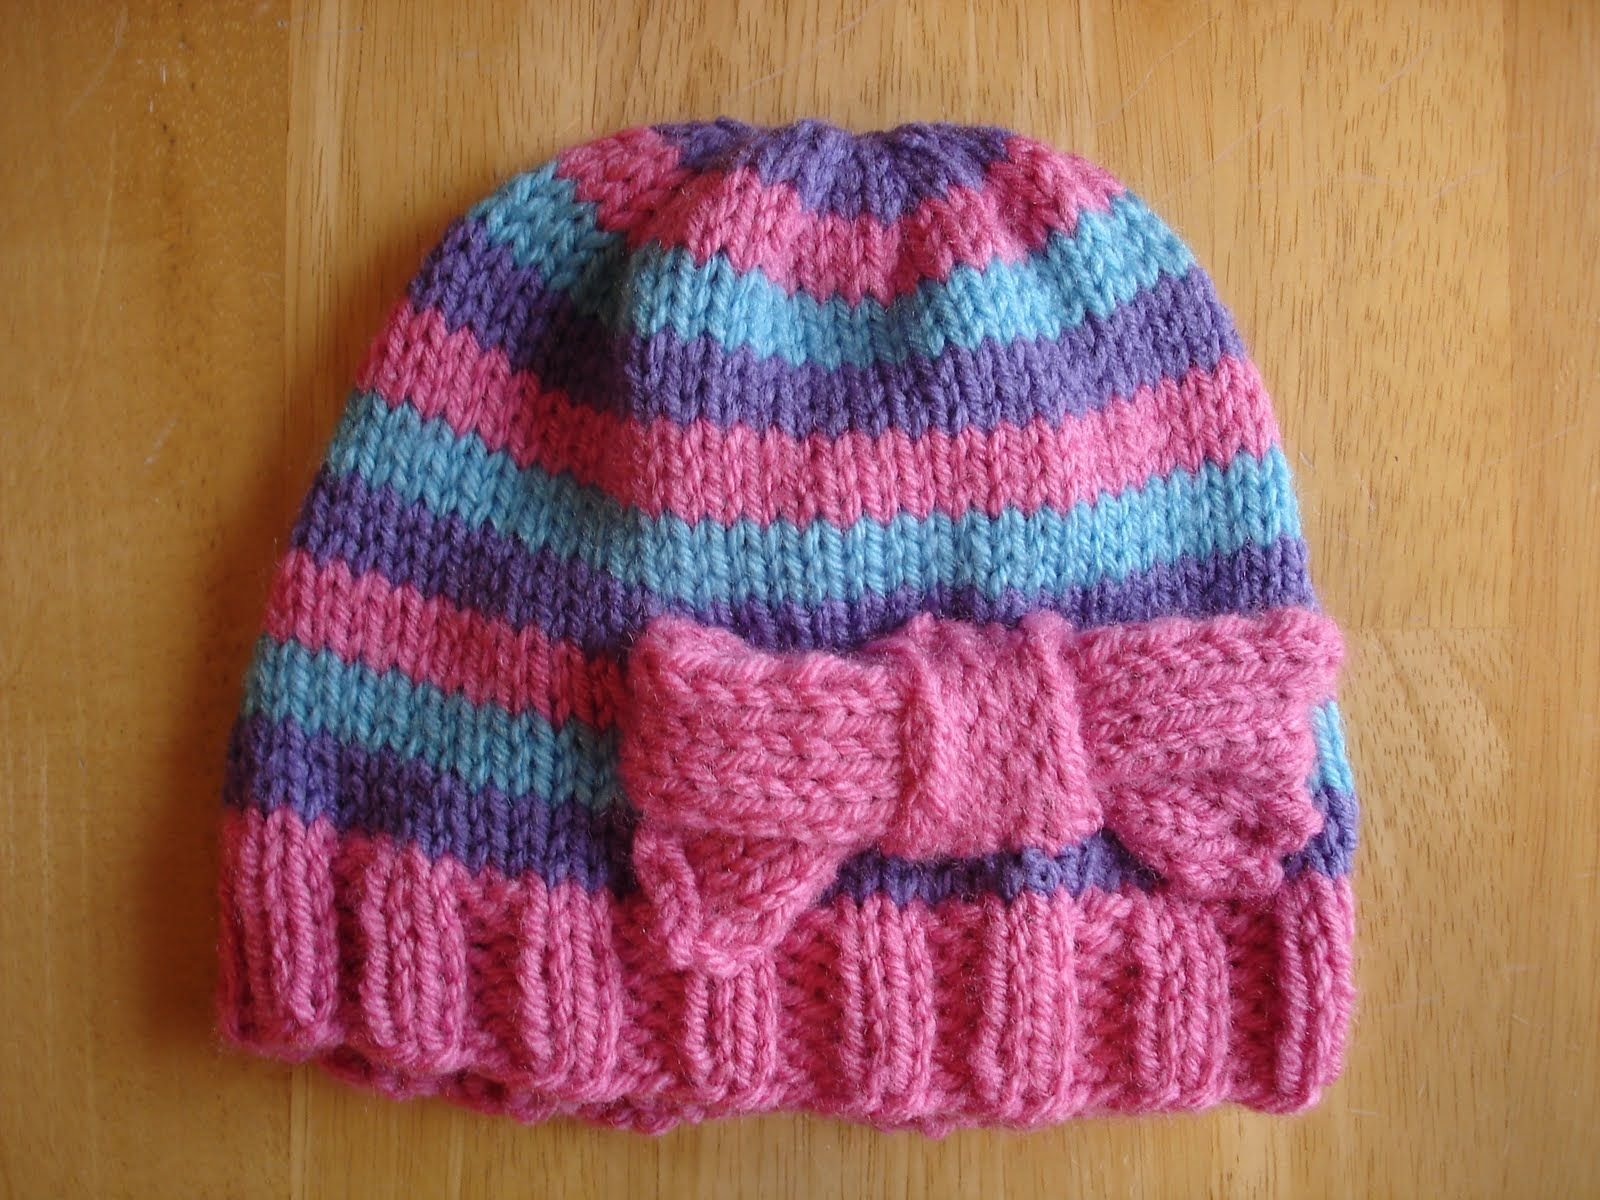 Free Knitting Pattern...Super Pink Toddler Hat! | Knitting patterns ...